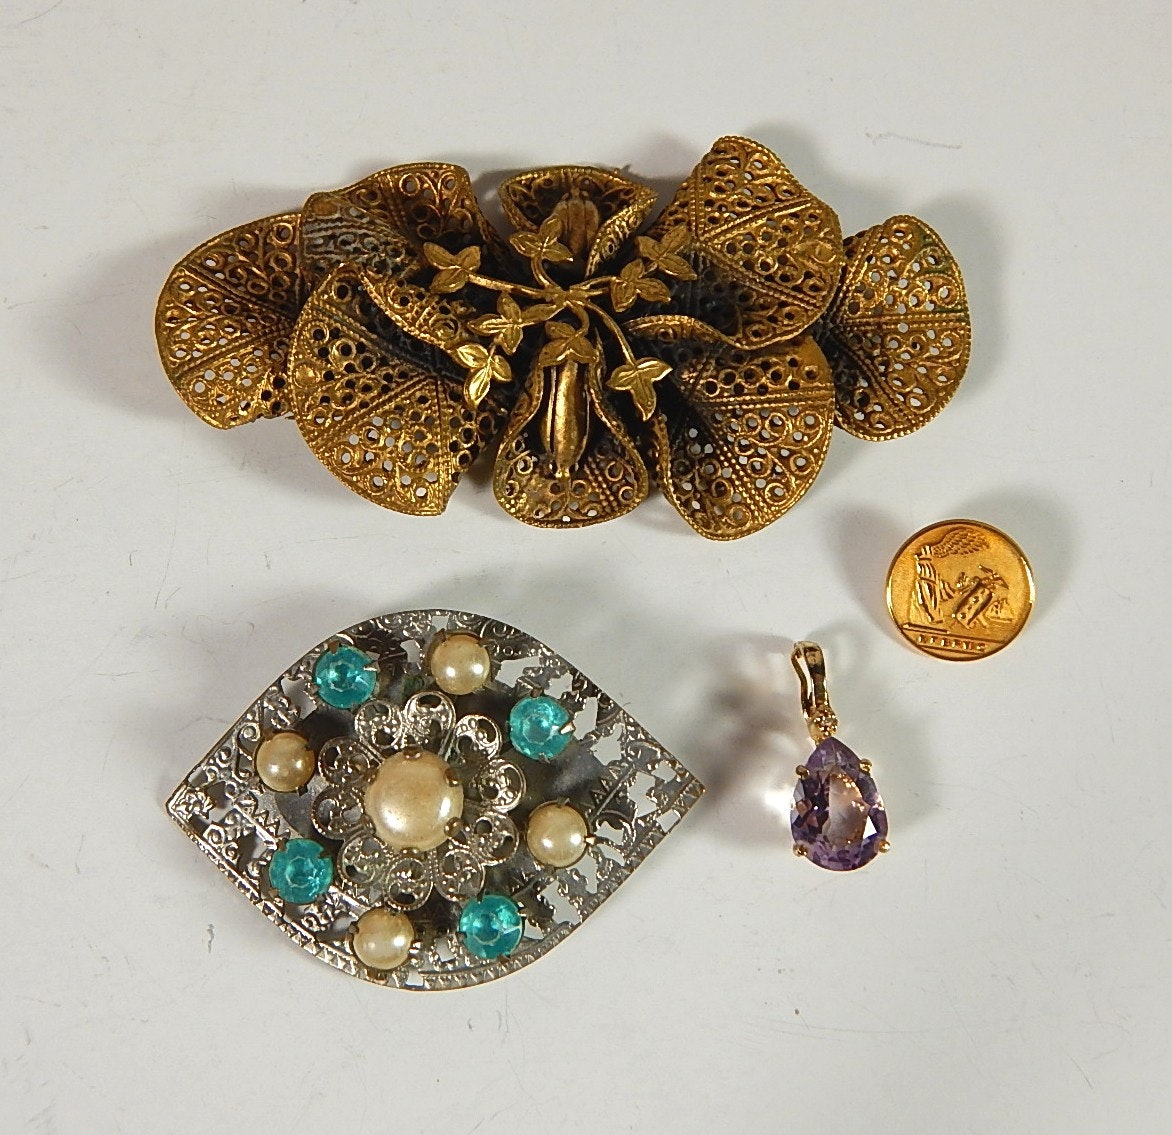 Vintage Brooches and Pendants